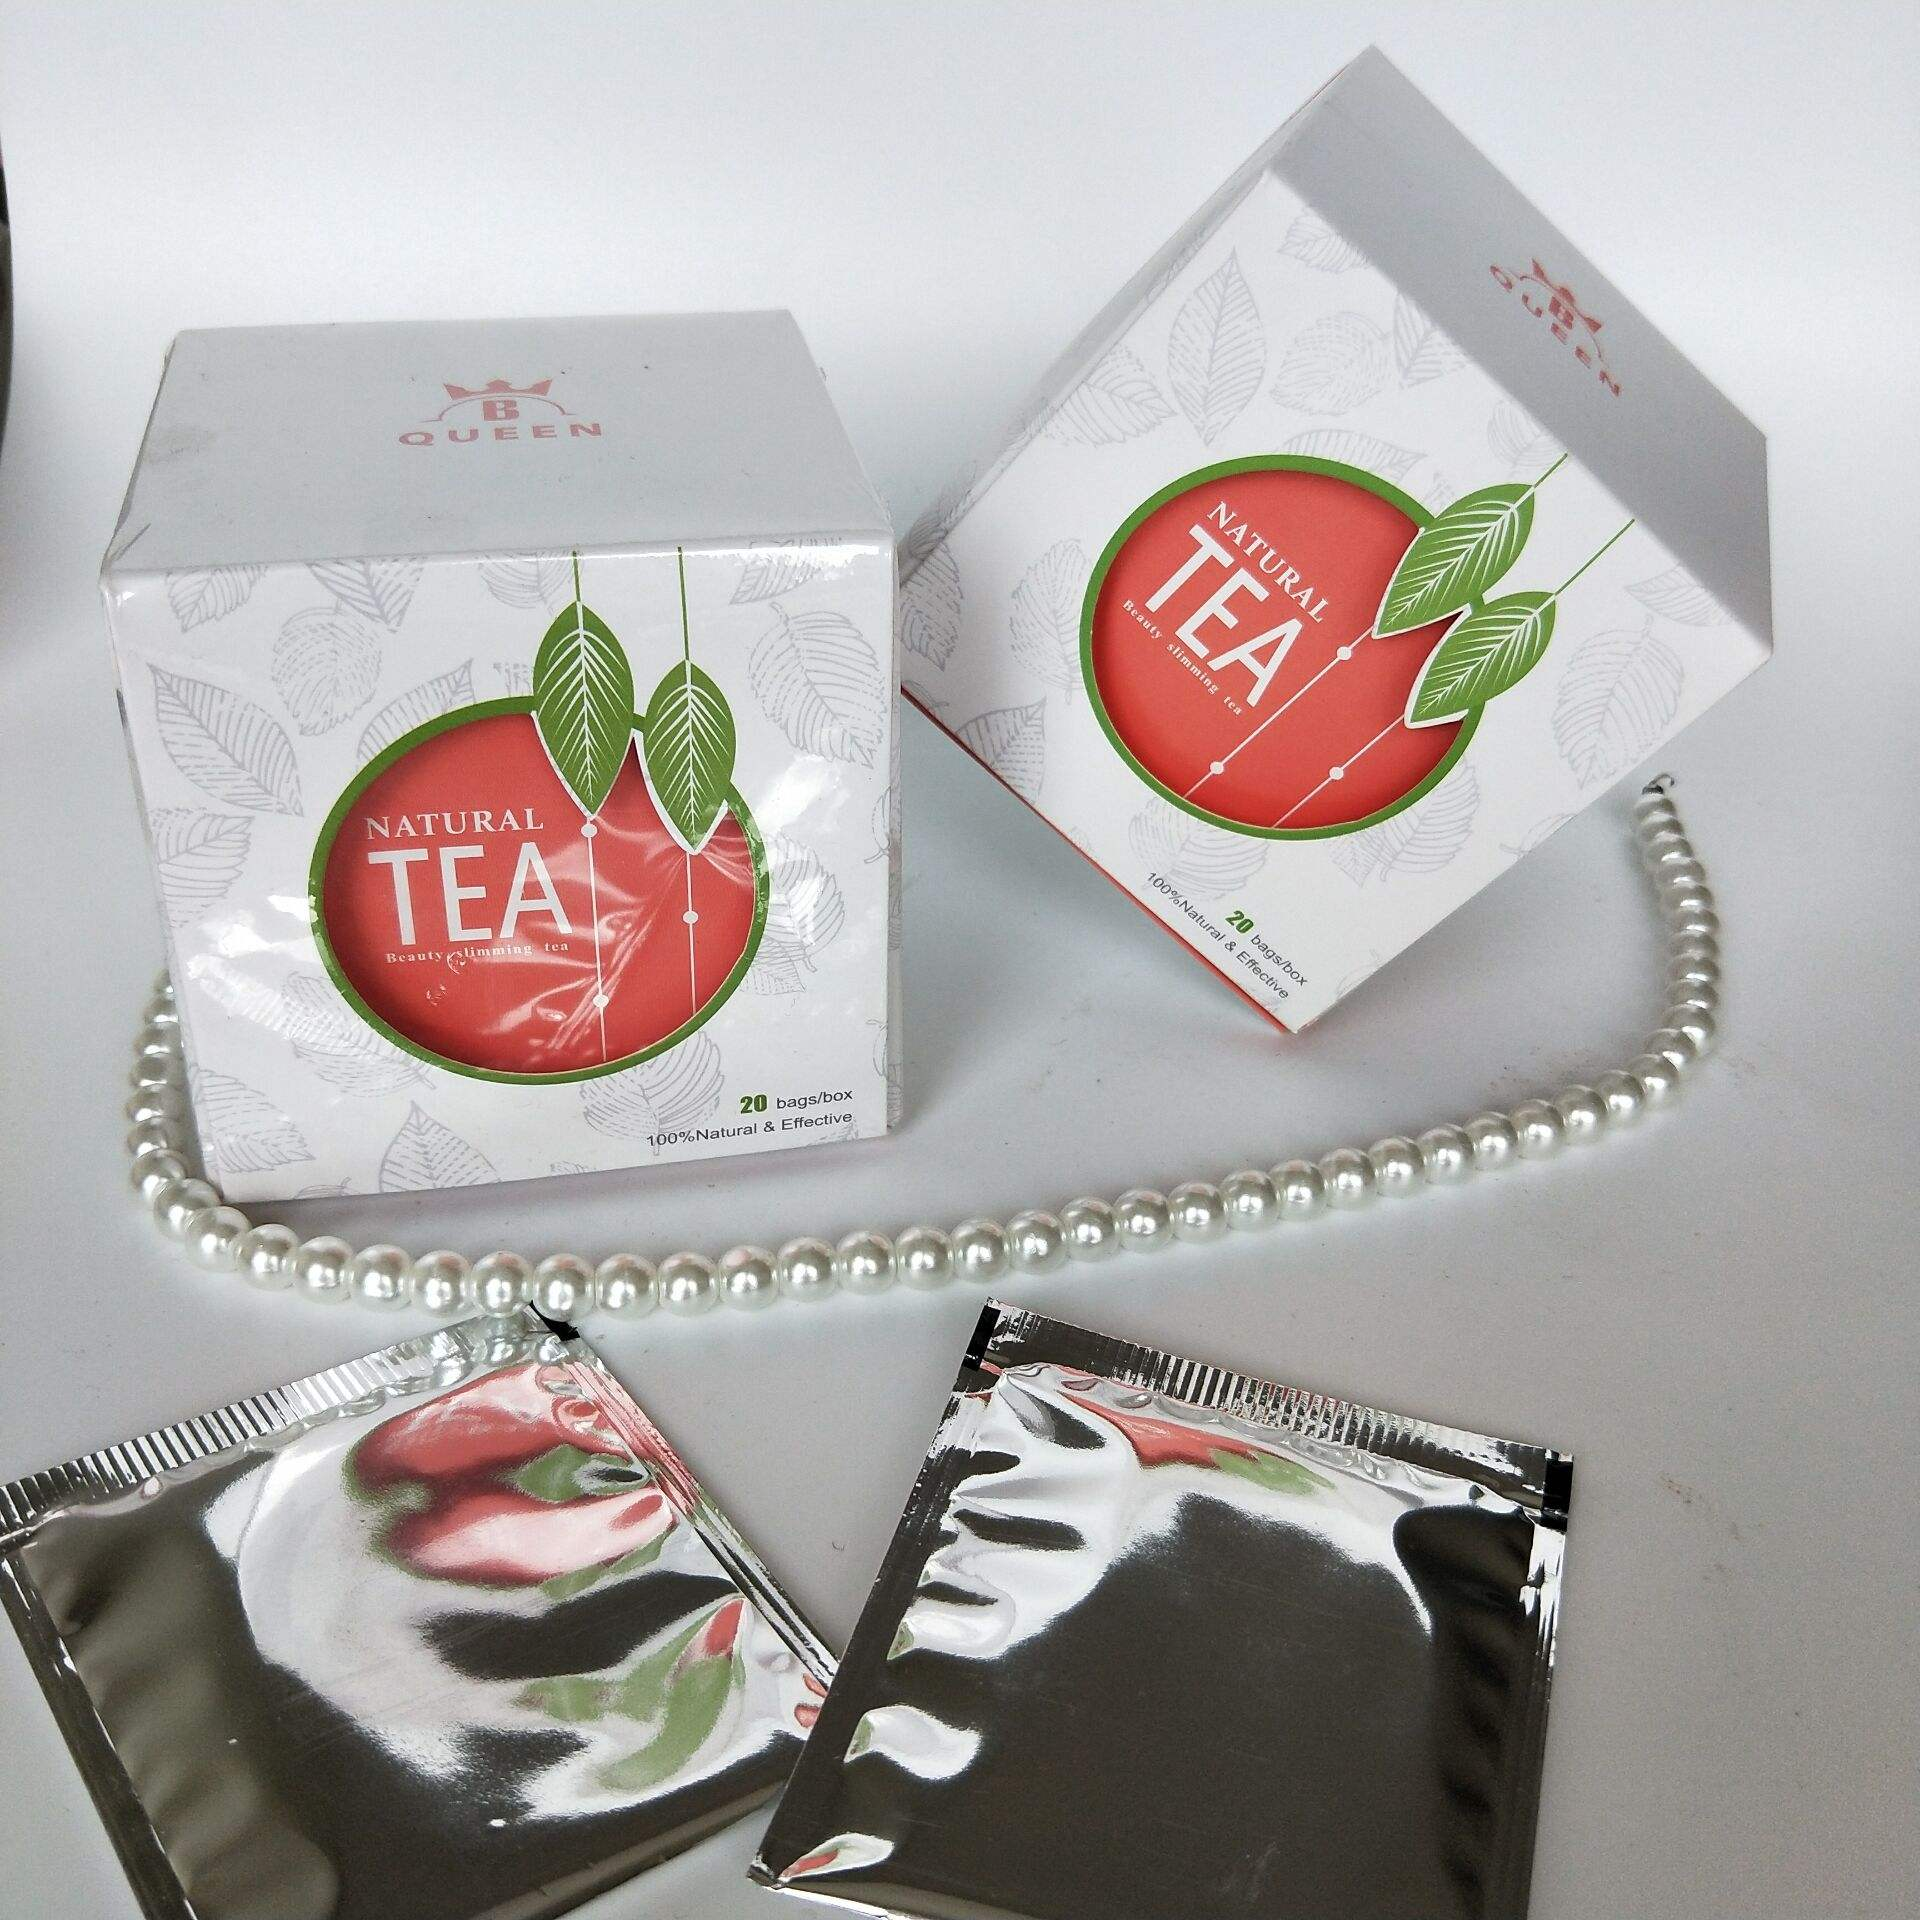 GET YOUR BEACH BODY READY private label latest ingredient private label tea box packaging natural slim tea no side effect